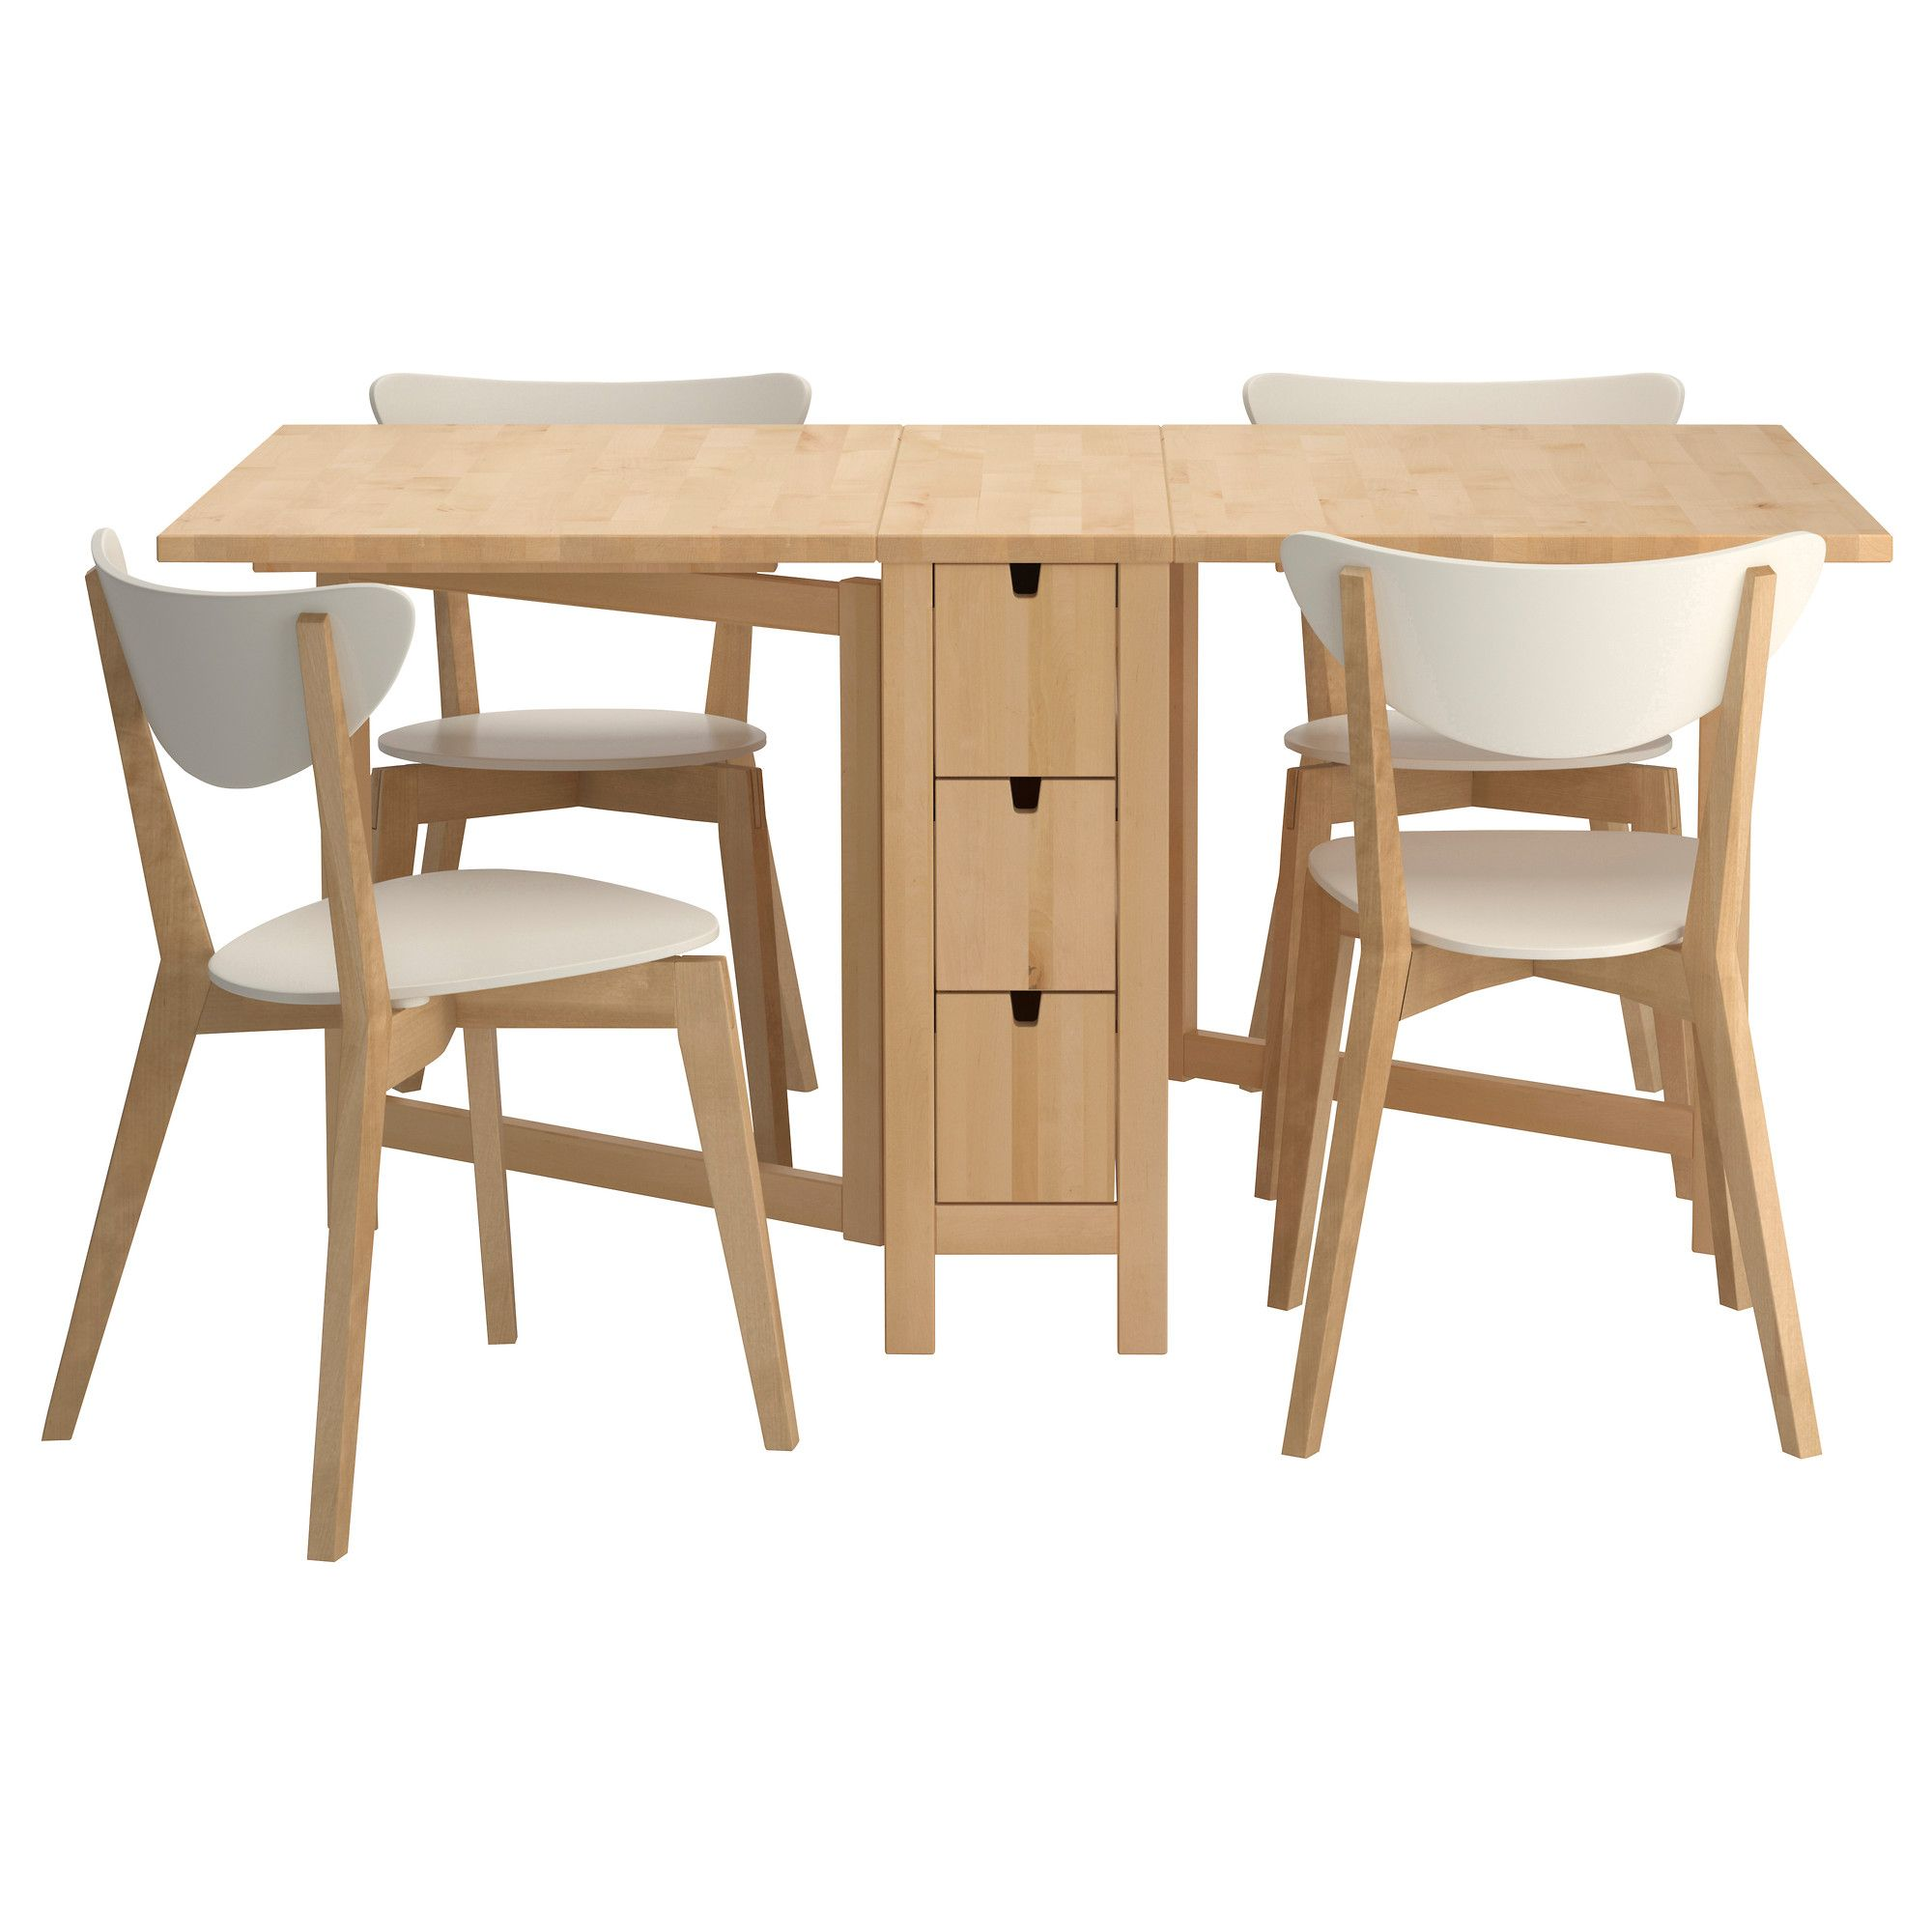 Ikea Tables Kitchen: NORDEN/NORDMYRA Table And 4 Chairs - IKEA